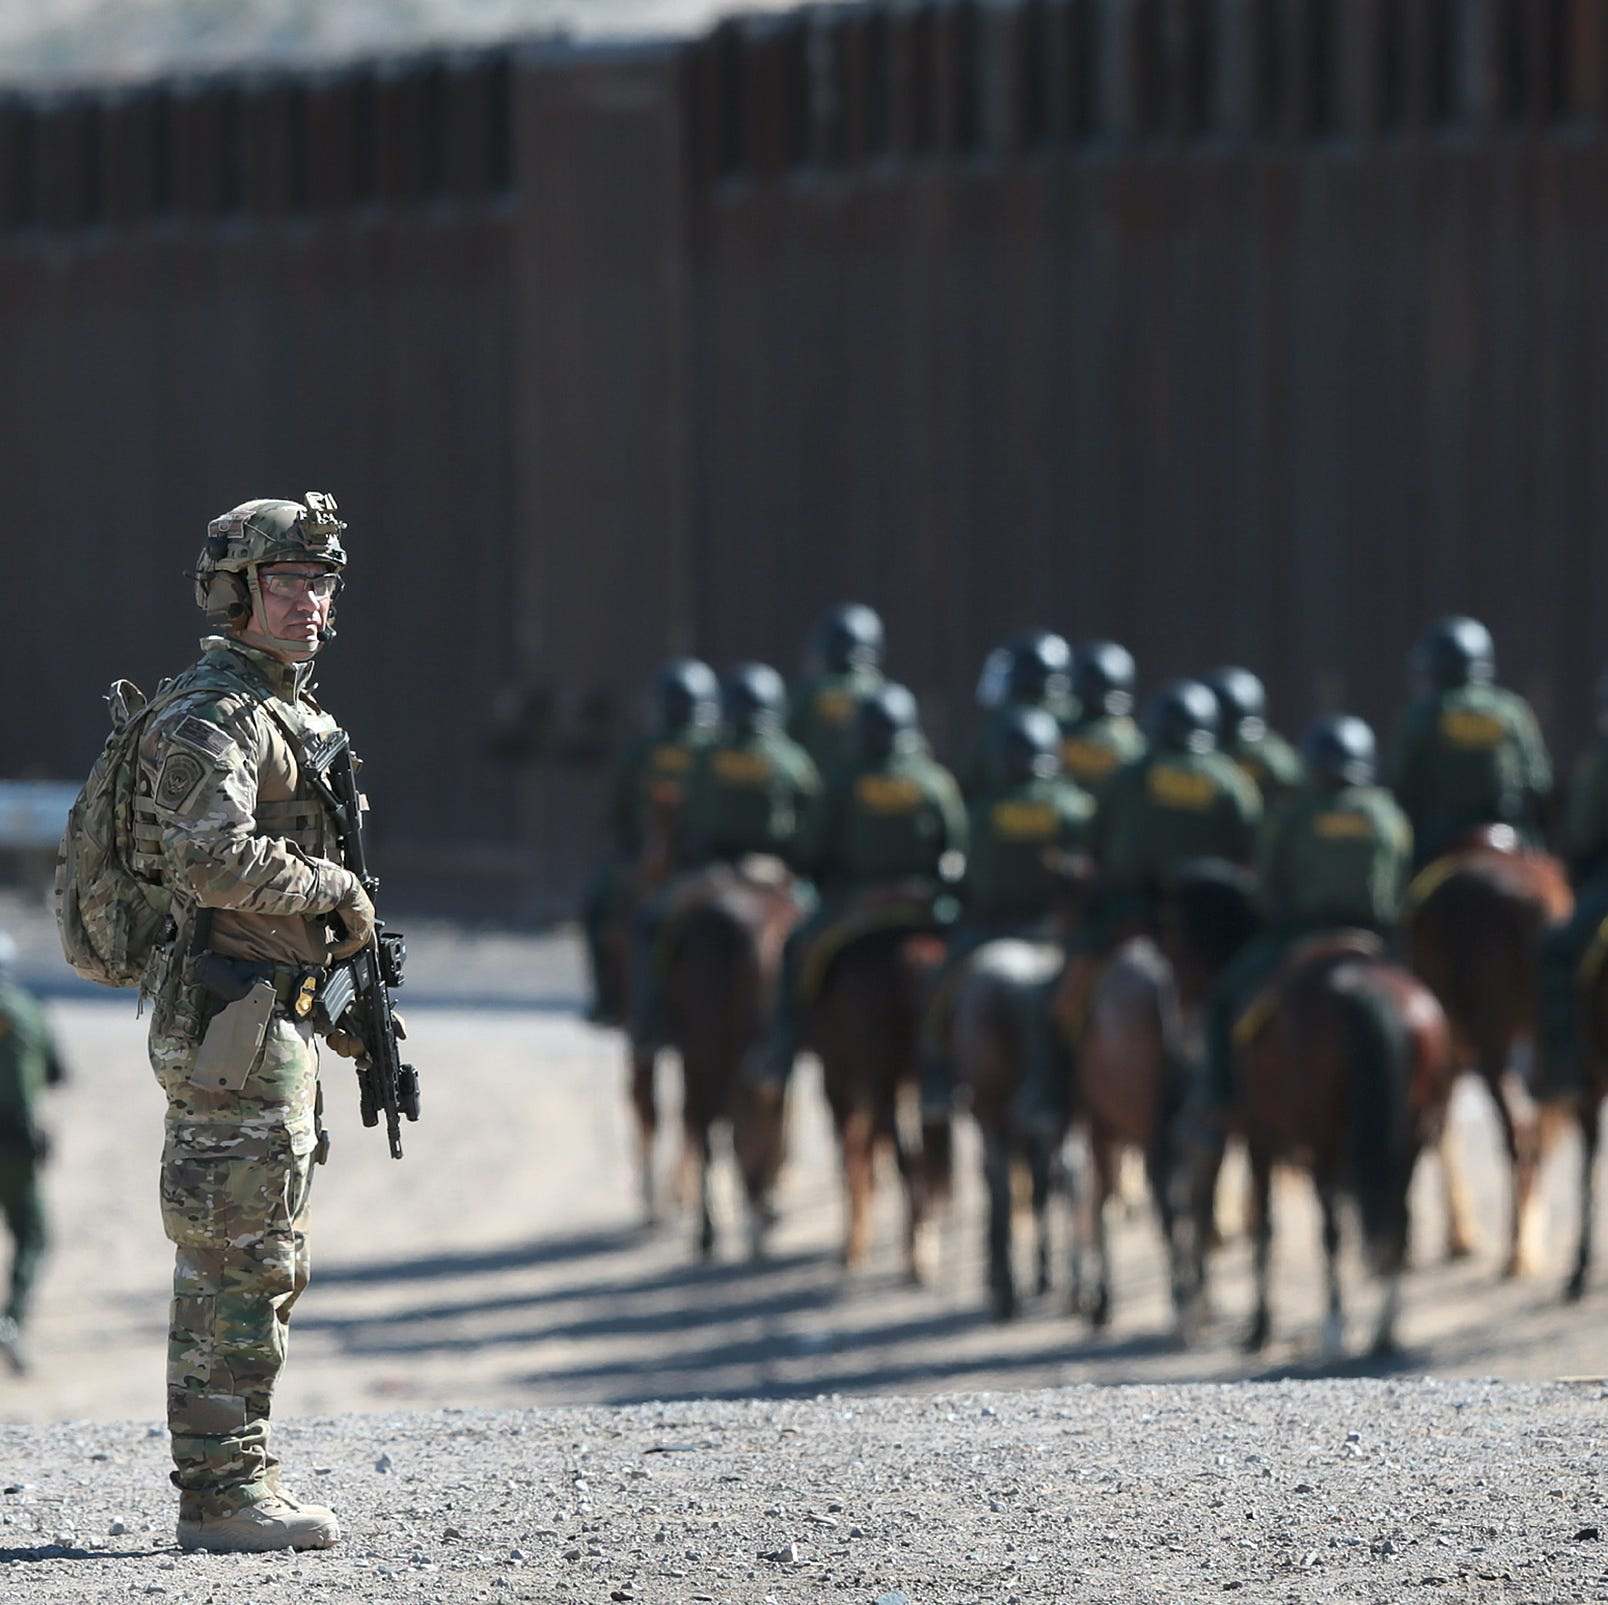 Credit Operation Hold the Line for El Paso's being a safe city: Reader